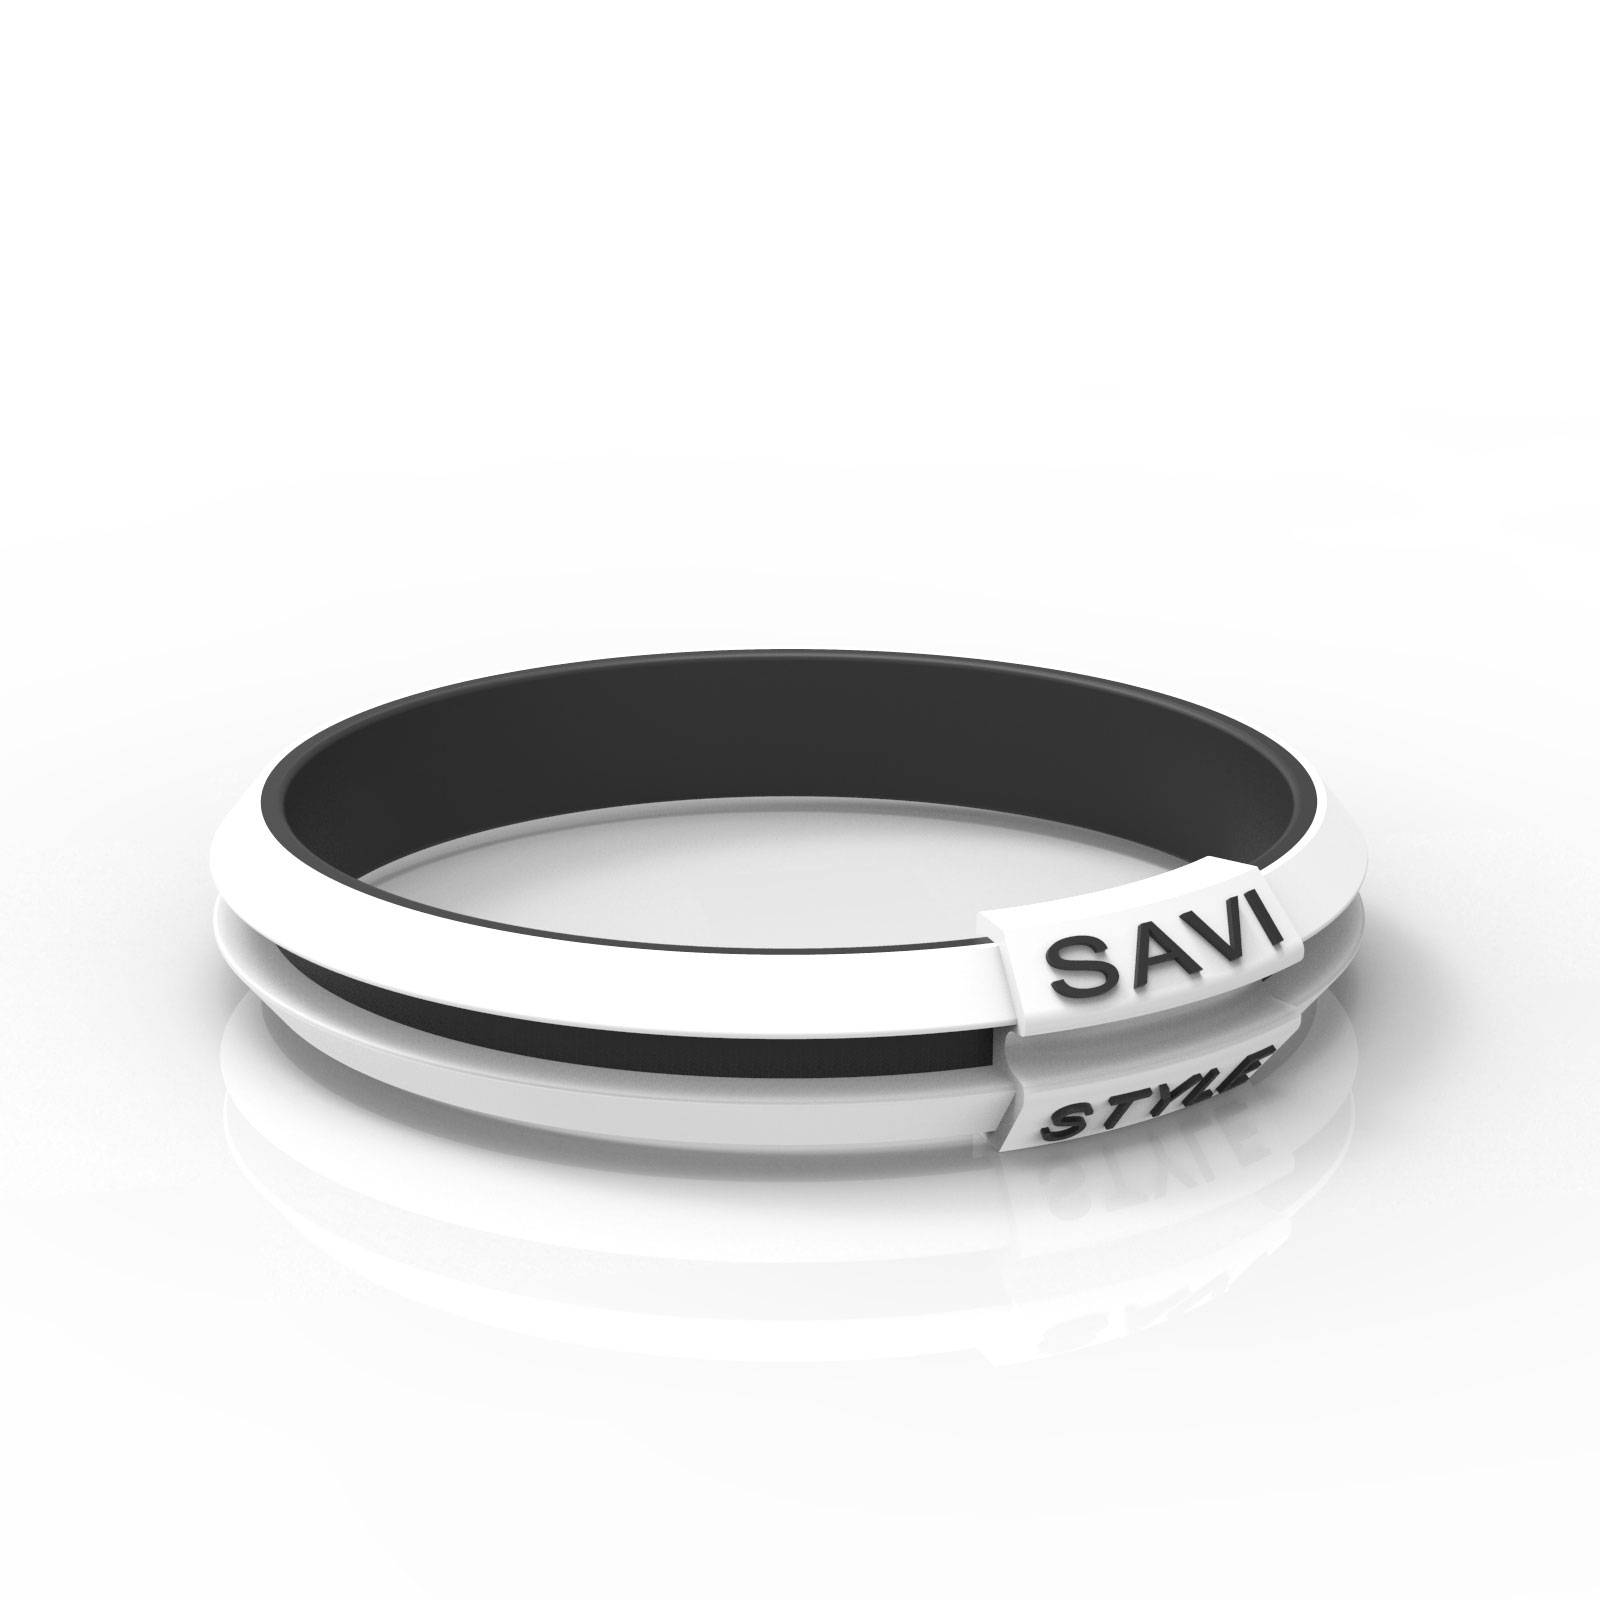 savi sleek brilliant white by savistle single view